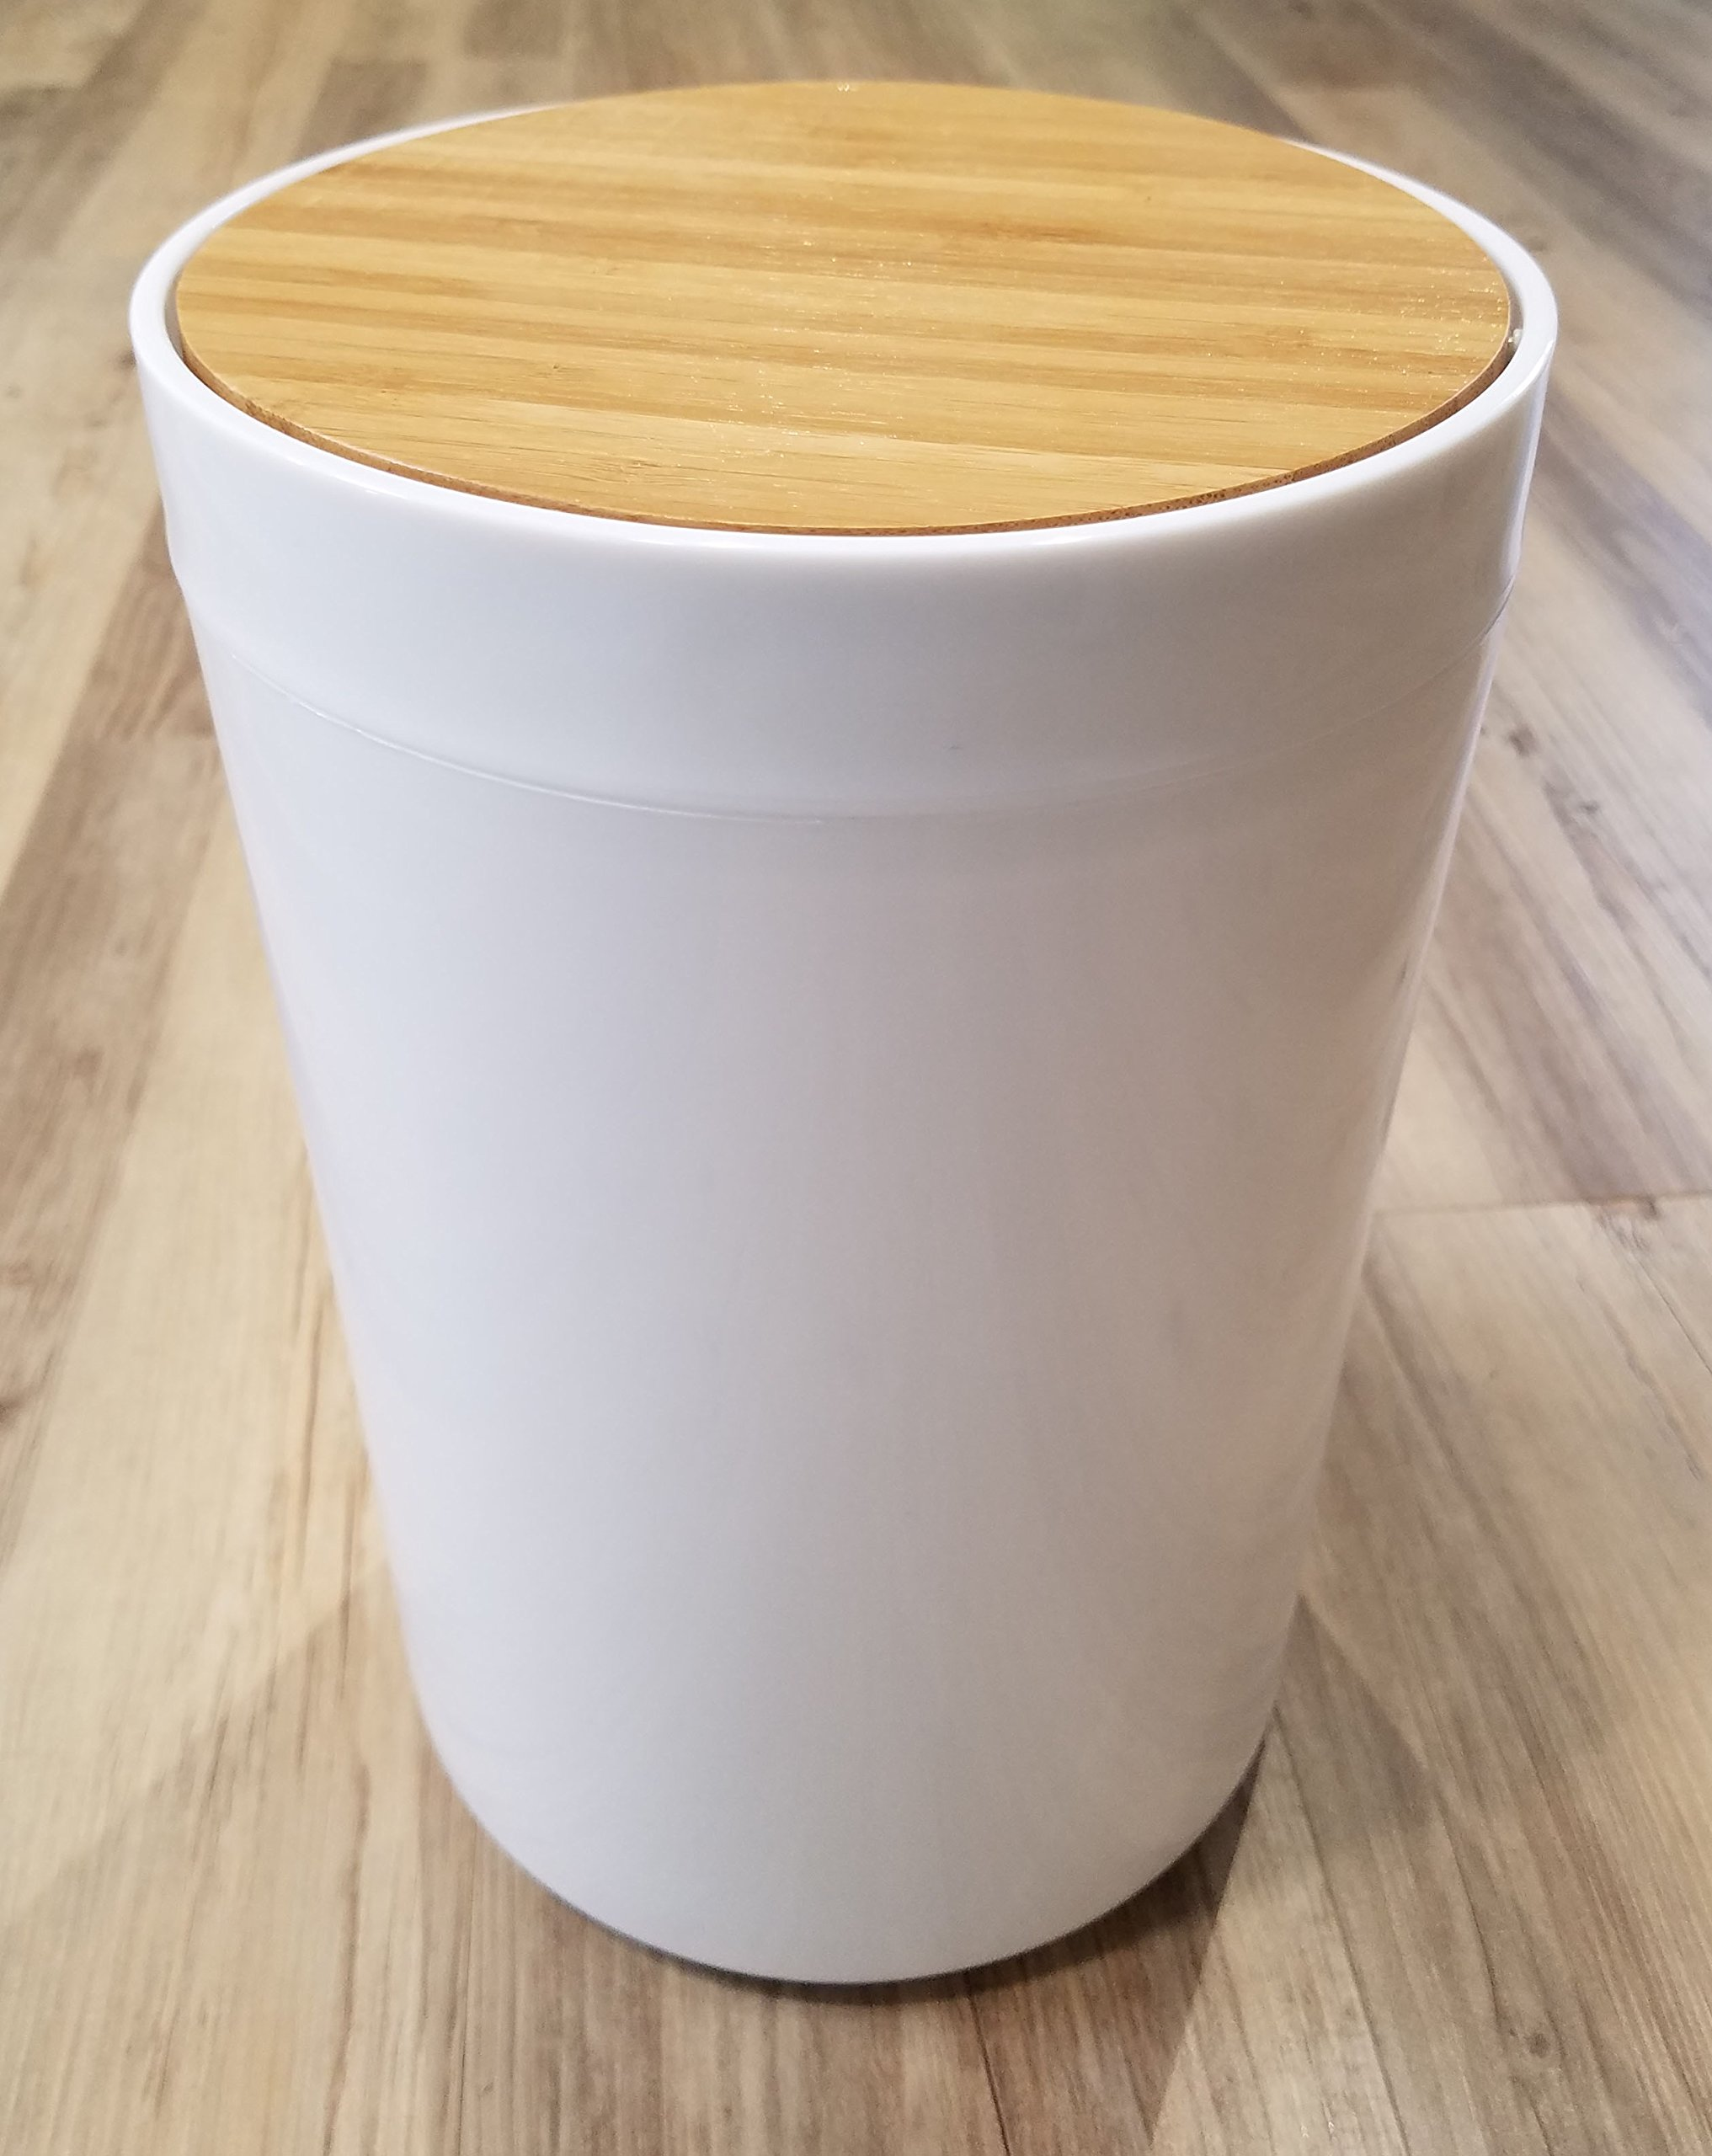 EVIDECO Round Bathroom Floor Trash Can Padang, White/Brown by EVIDECO (Image #2)